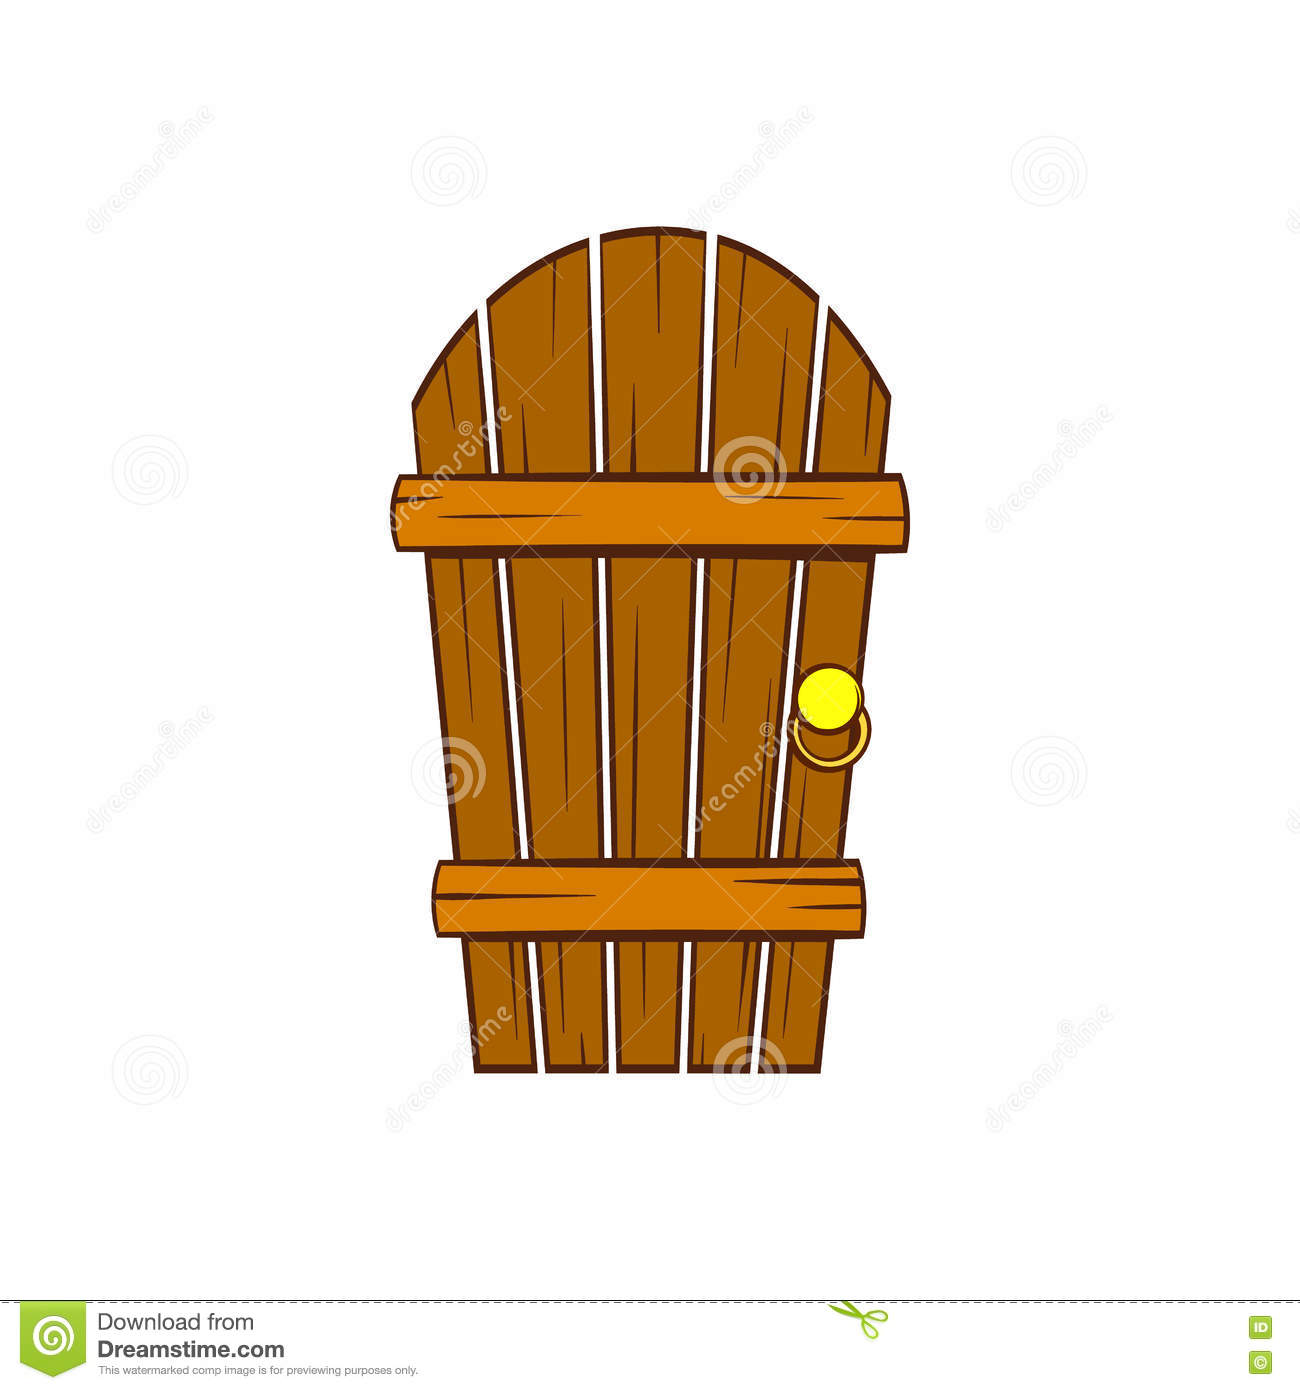 Old arched wooden door icon cartoon style Stock Photography  sc 1 st  Dreamstime.com & Cartoon Wooden Old Door Stock Vector - Image: 80269272 pezcame.com